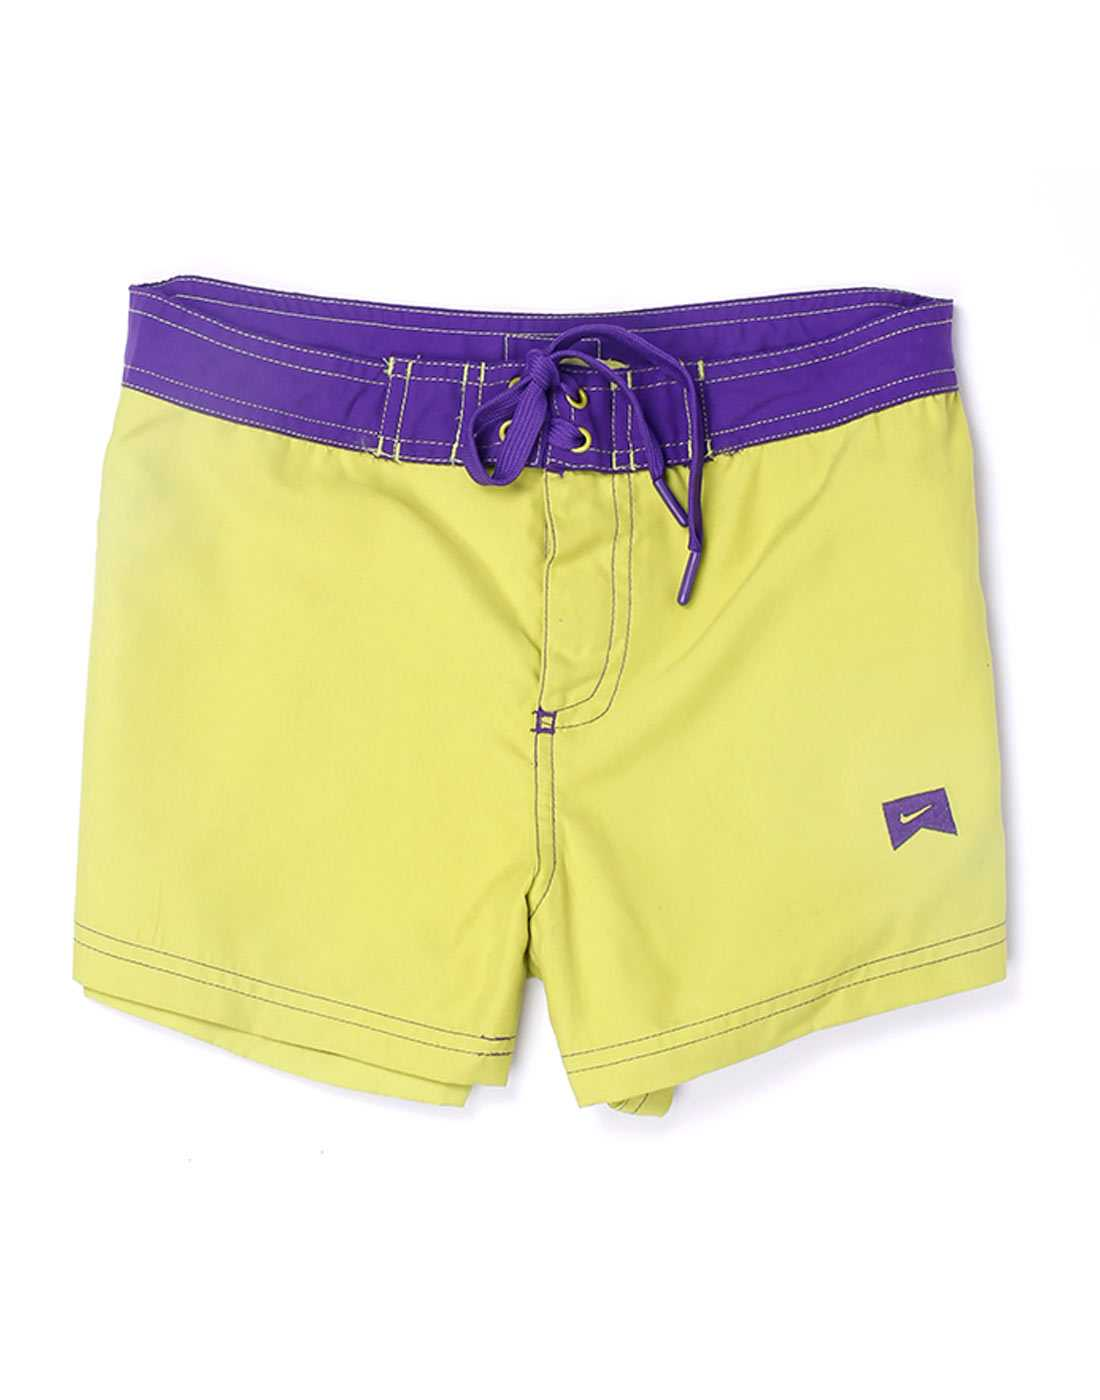 Nike Green Polyester Girls Shorts